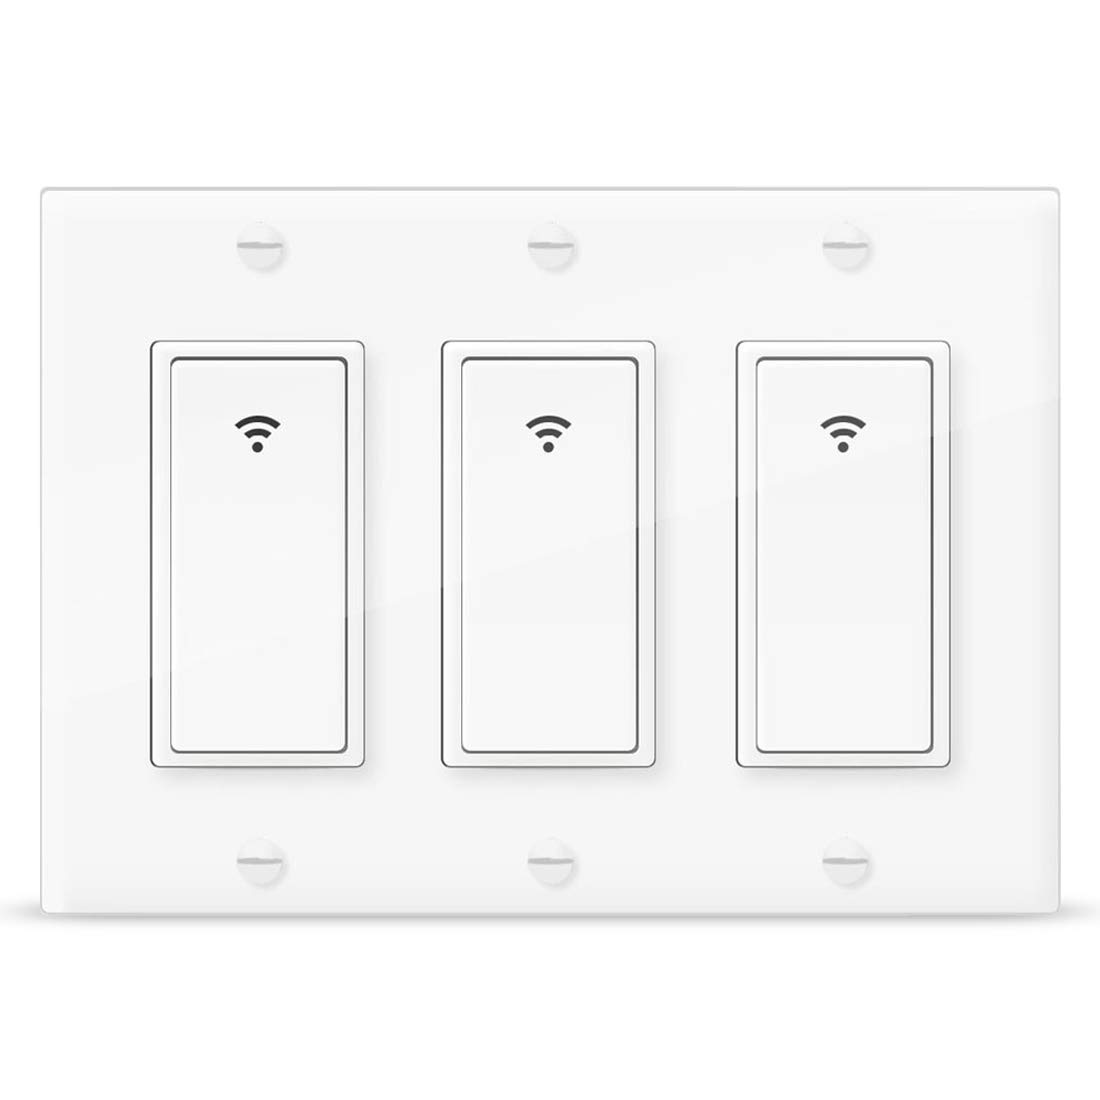 Smart Light Switch,Vaticas 100-240V Smart WIFI Light Switch,Compatible with Alexa,Google Home and IFTTT, With Remote Control and Timer,No Hub required Applicable to Family and Office(3 Gang White)